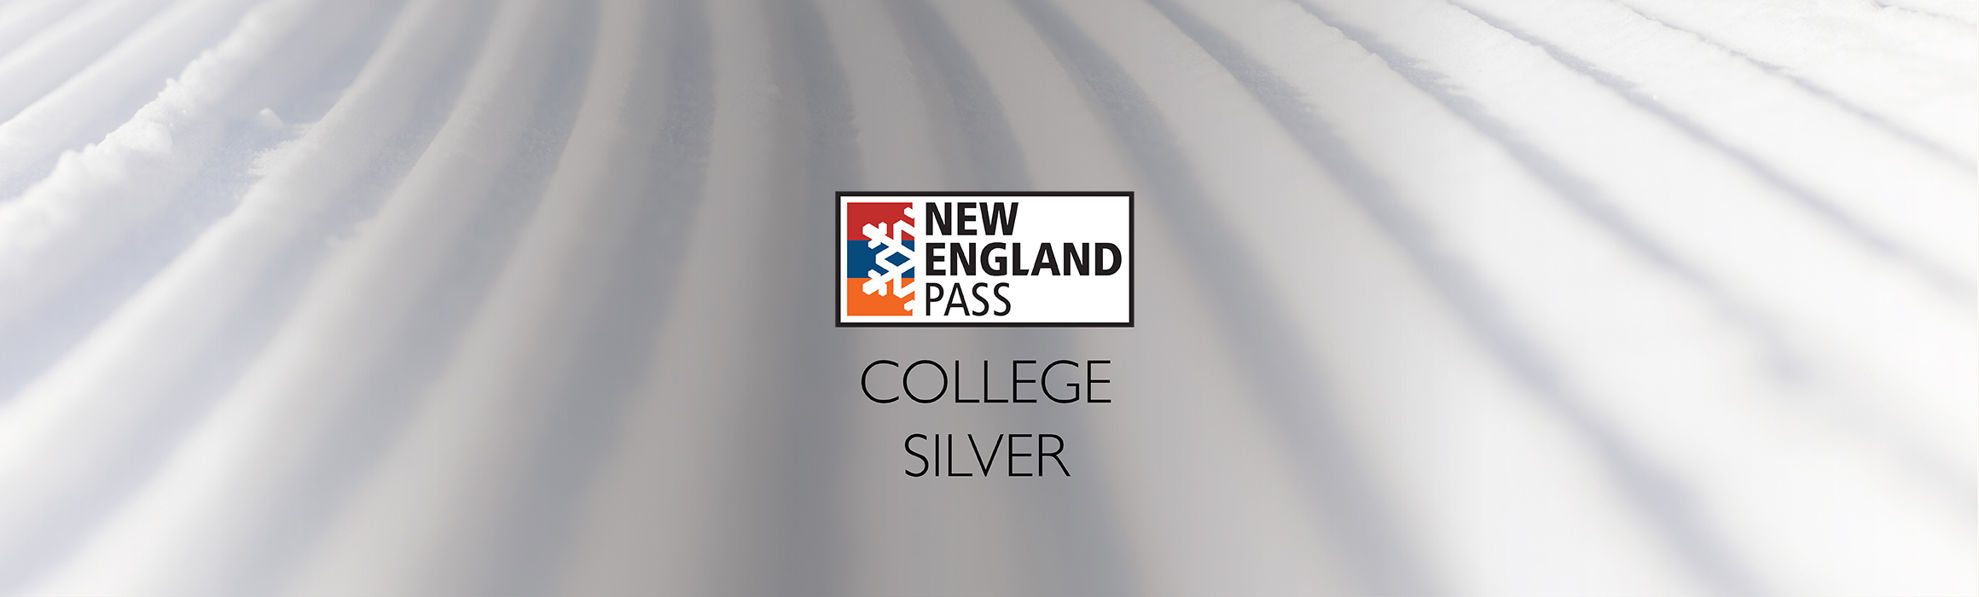 Picture of College Silver Pass